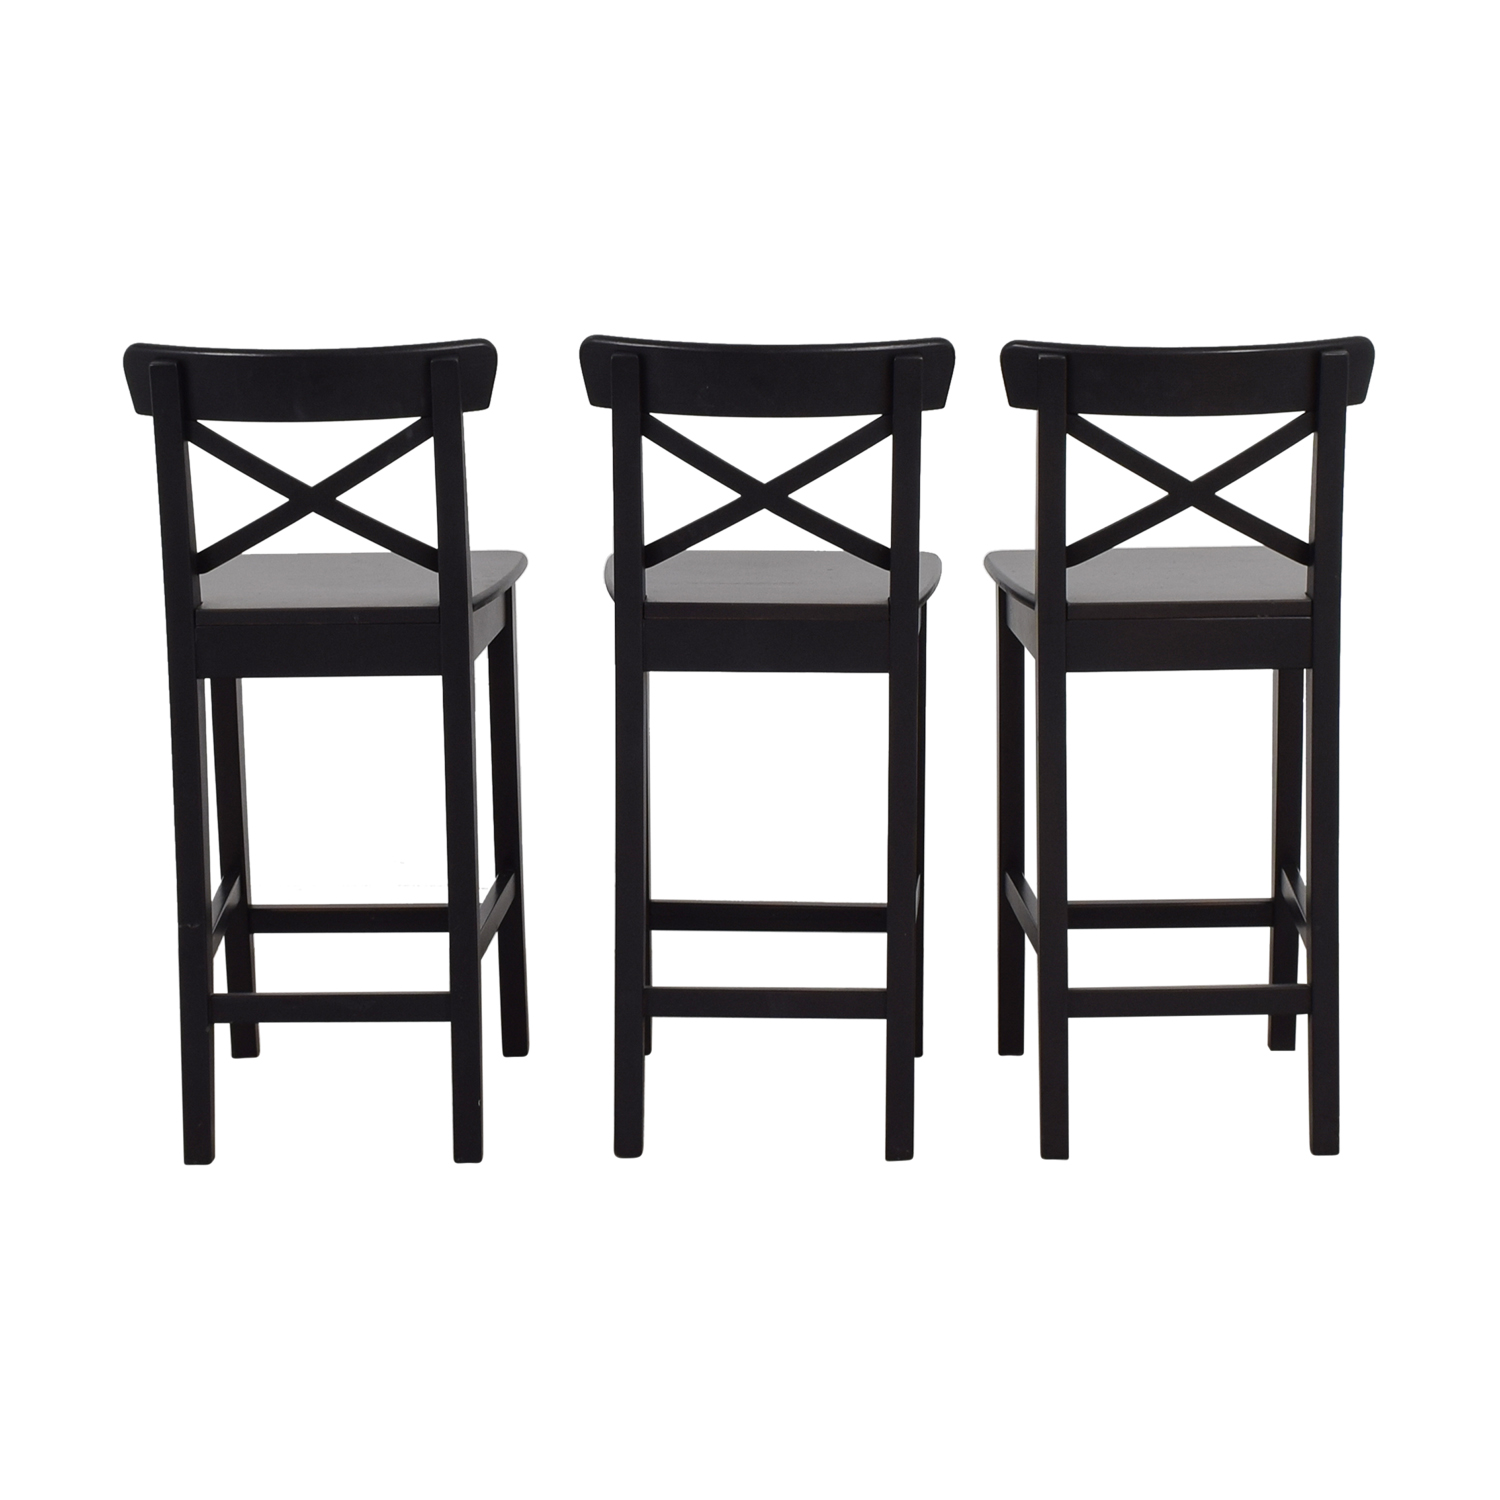 Fabulous 82 Off Ikea Ikea Black Bar Stools Chairs Unemploymentrelief Wooden Chair Designs For Living Room Unemploymentrelieforg